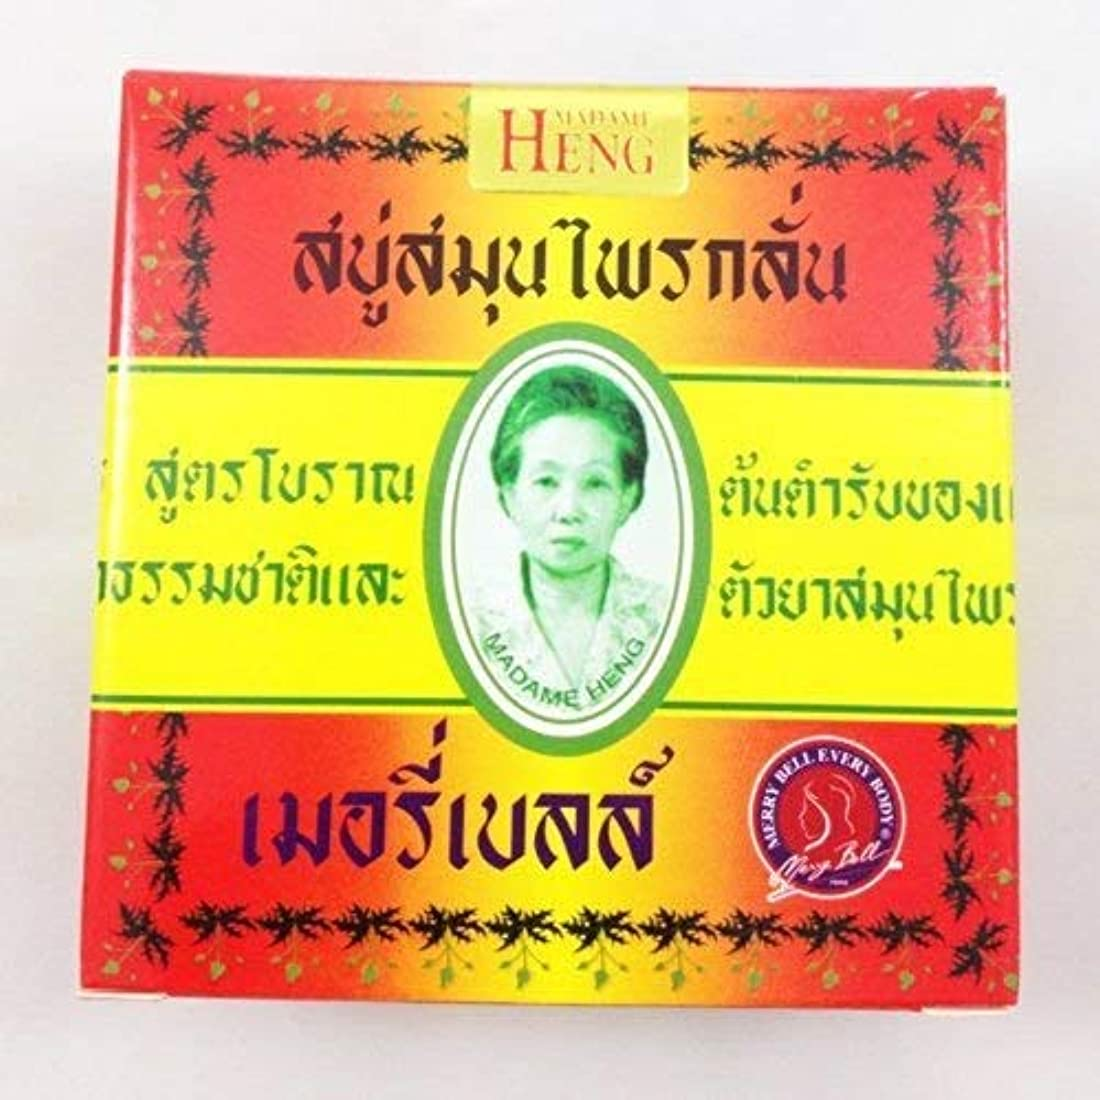 Madame Heng Thai Original Natural Herbal Soap Bar Made in Thailand 160gx2pcs by Ni Yom Thai shop